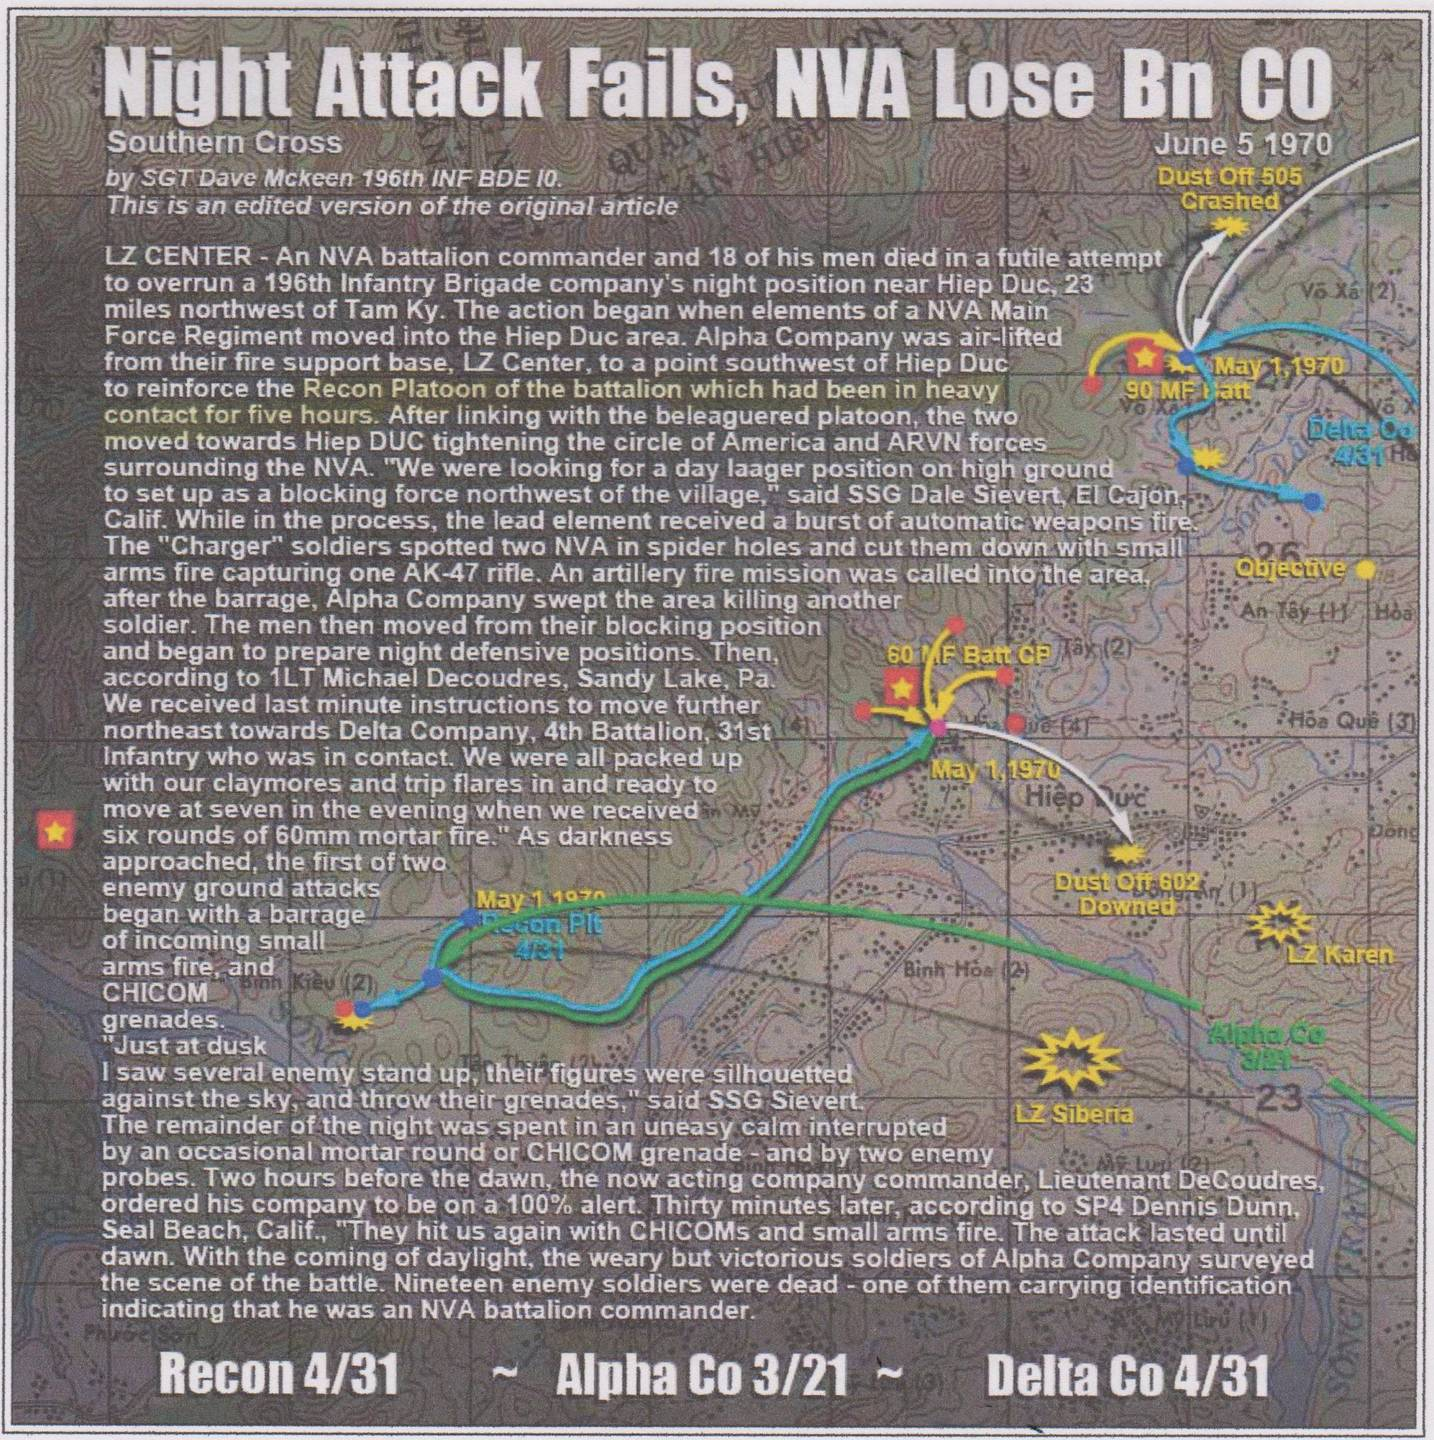 Map and text detailing a failed night attack.